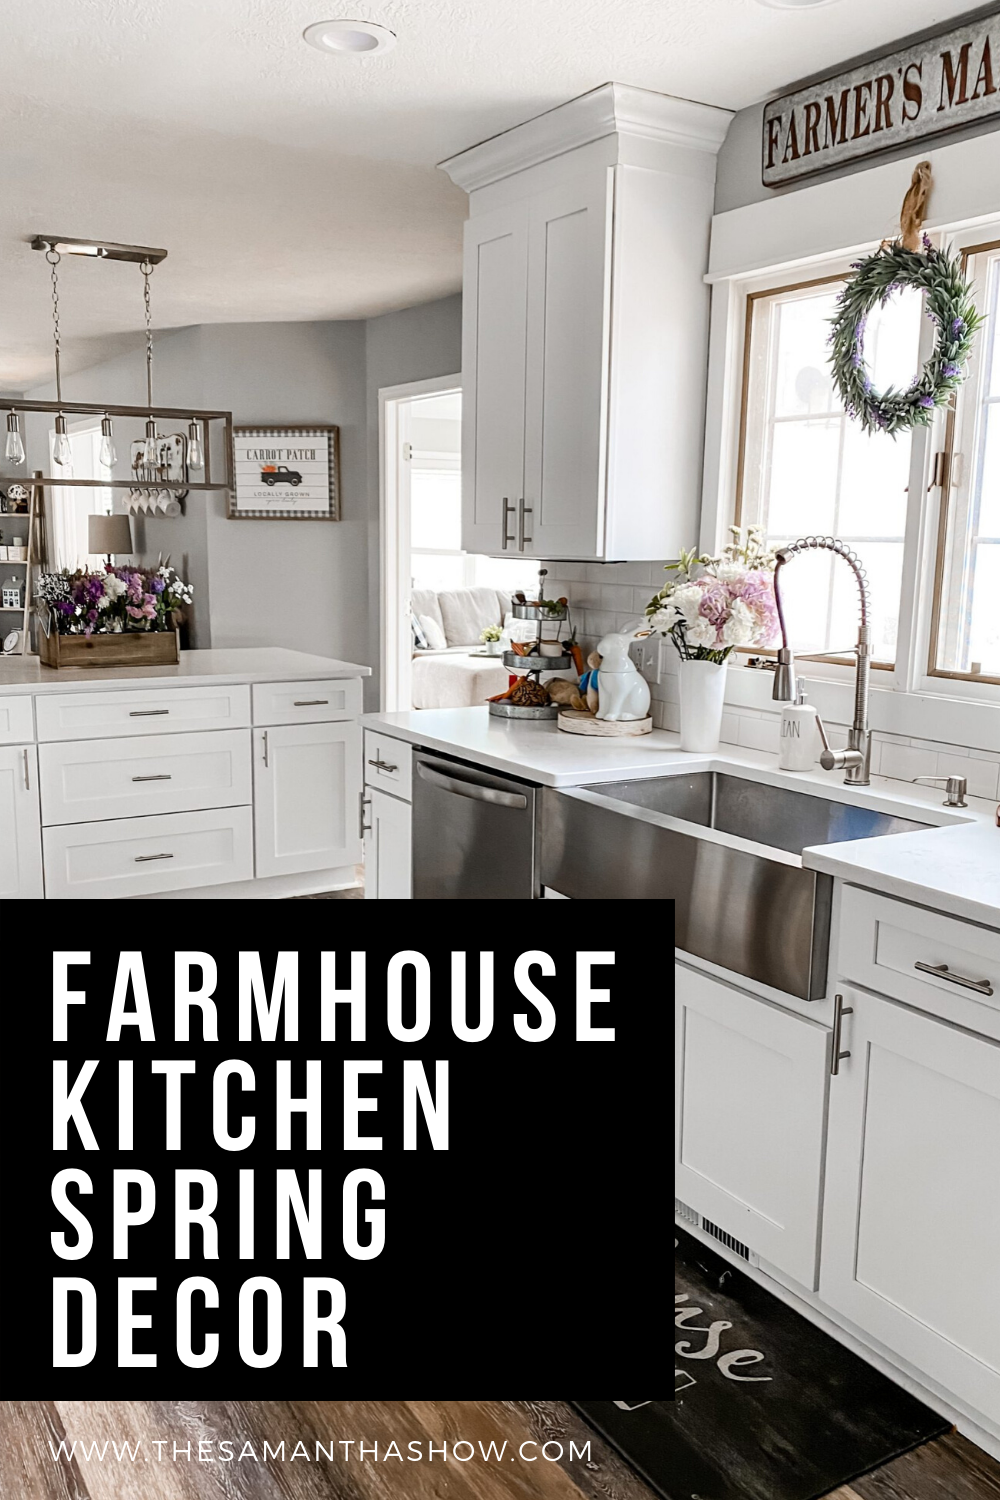 farmhouse kitchen spring decor (1)